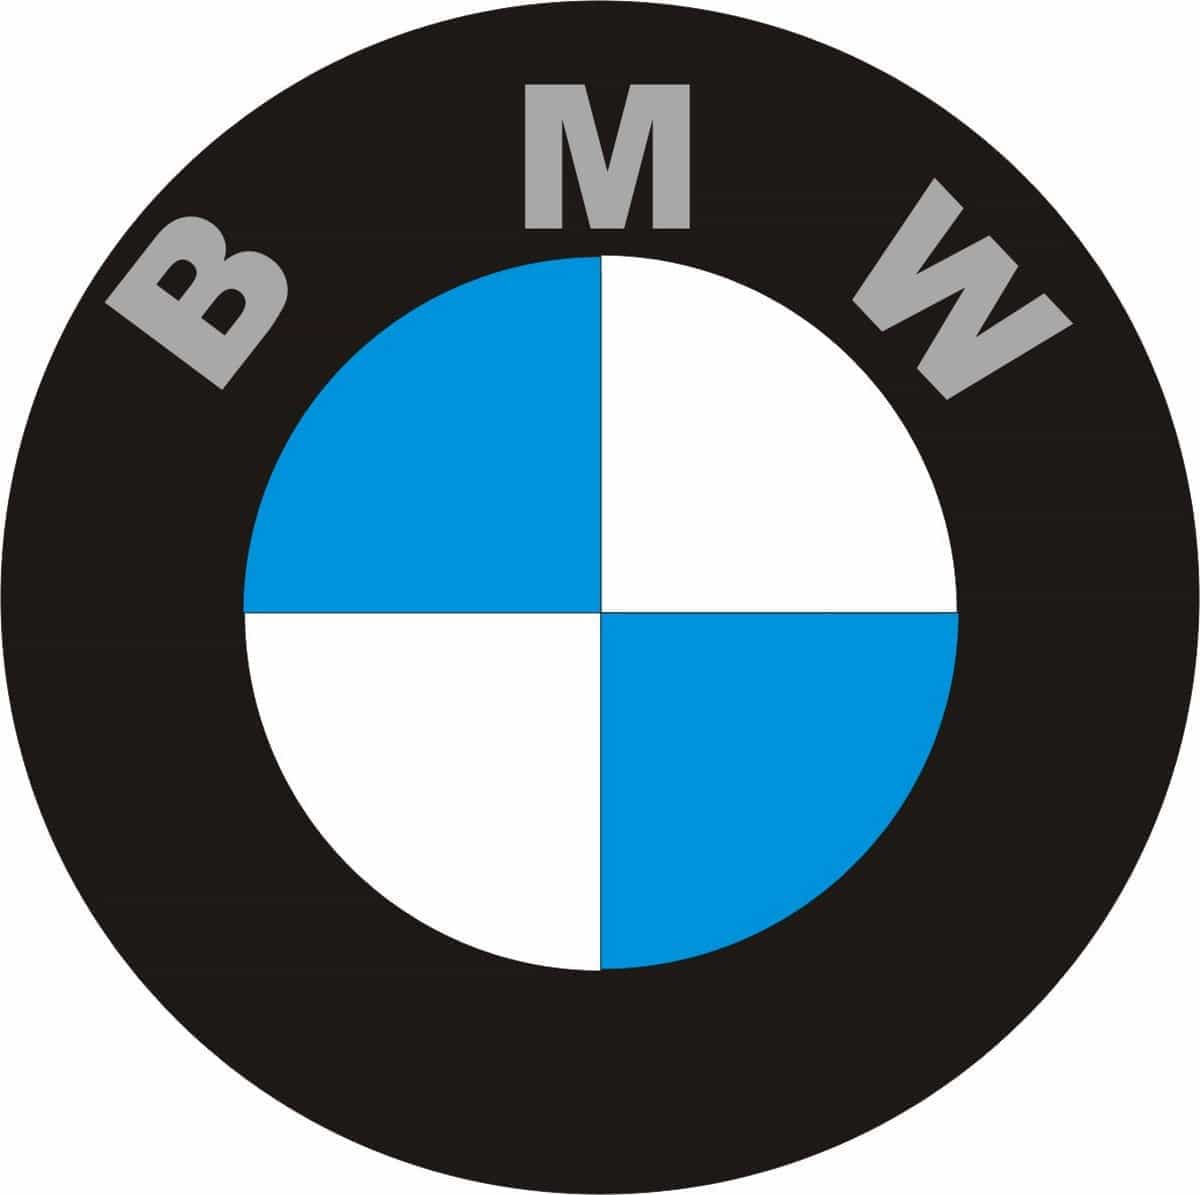 Marketing mix of BMW